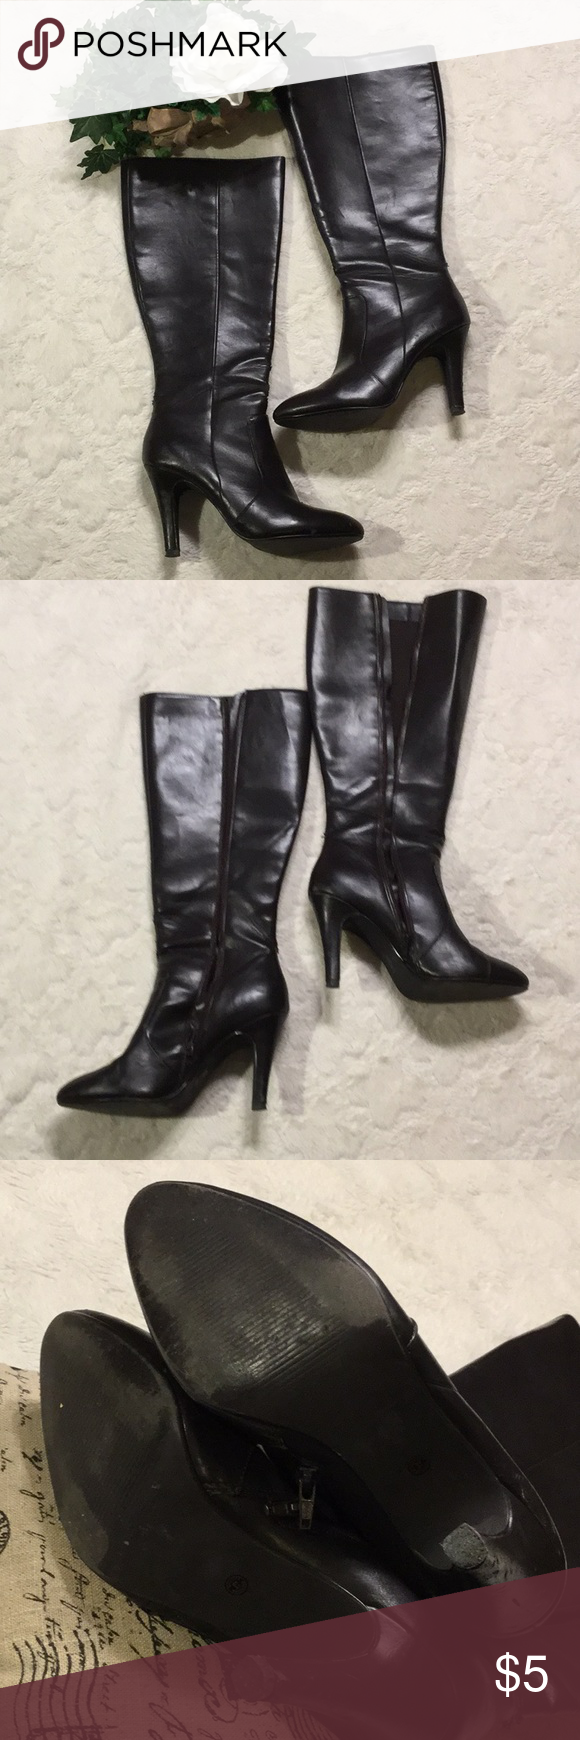 554c7e2175a Pre-Loved Worthington Brown Faux Leather Boots, 9M in 2018 | My Posh ...